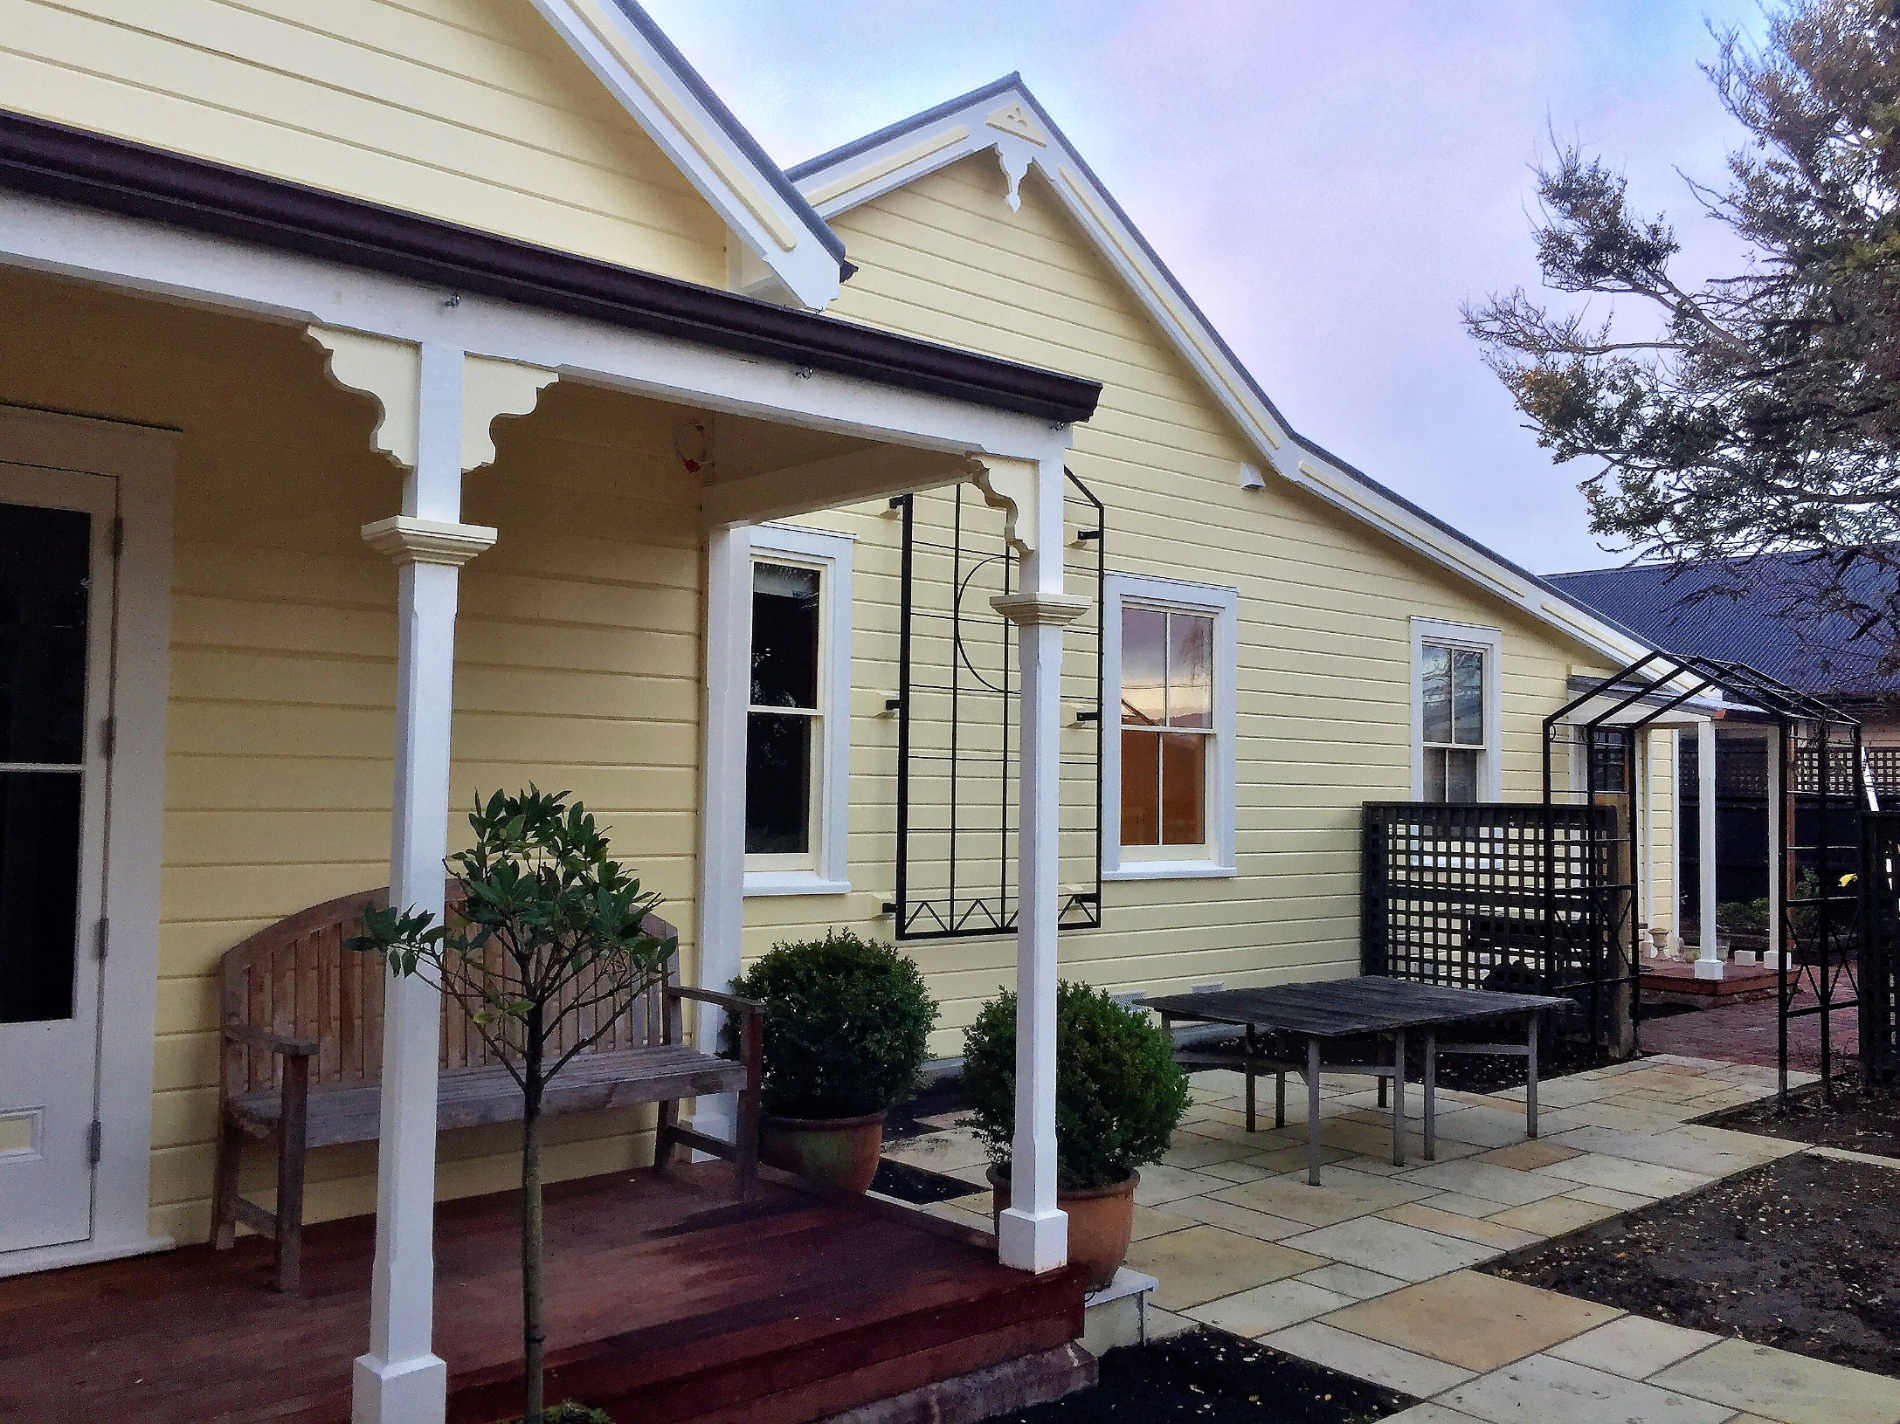 House exterior painted and renovated by G